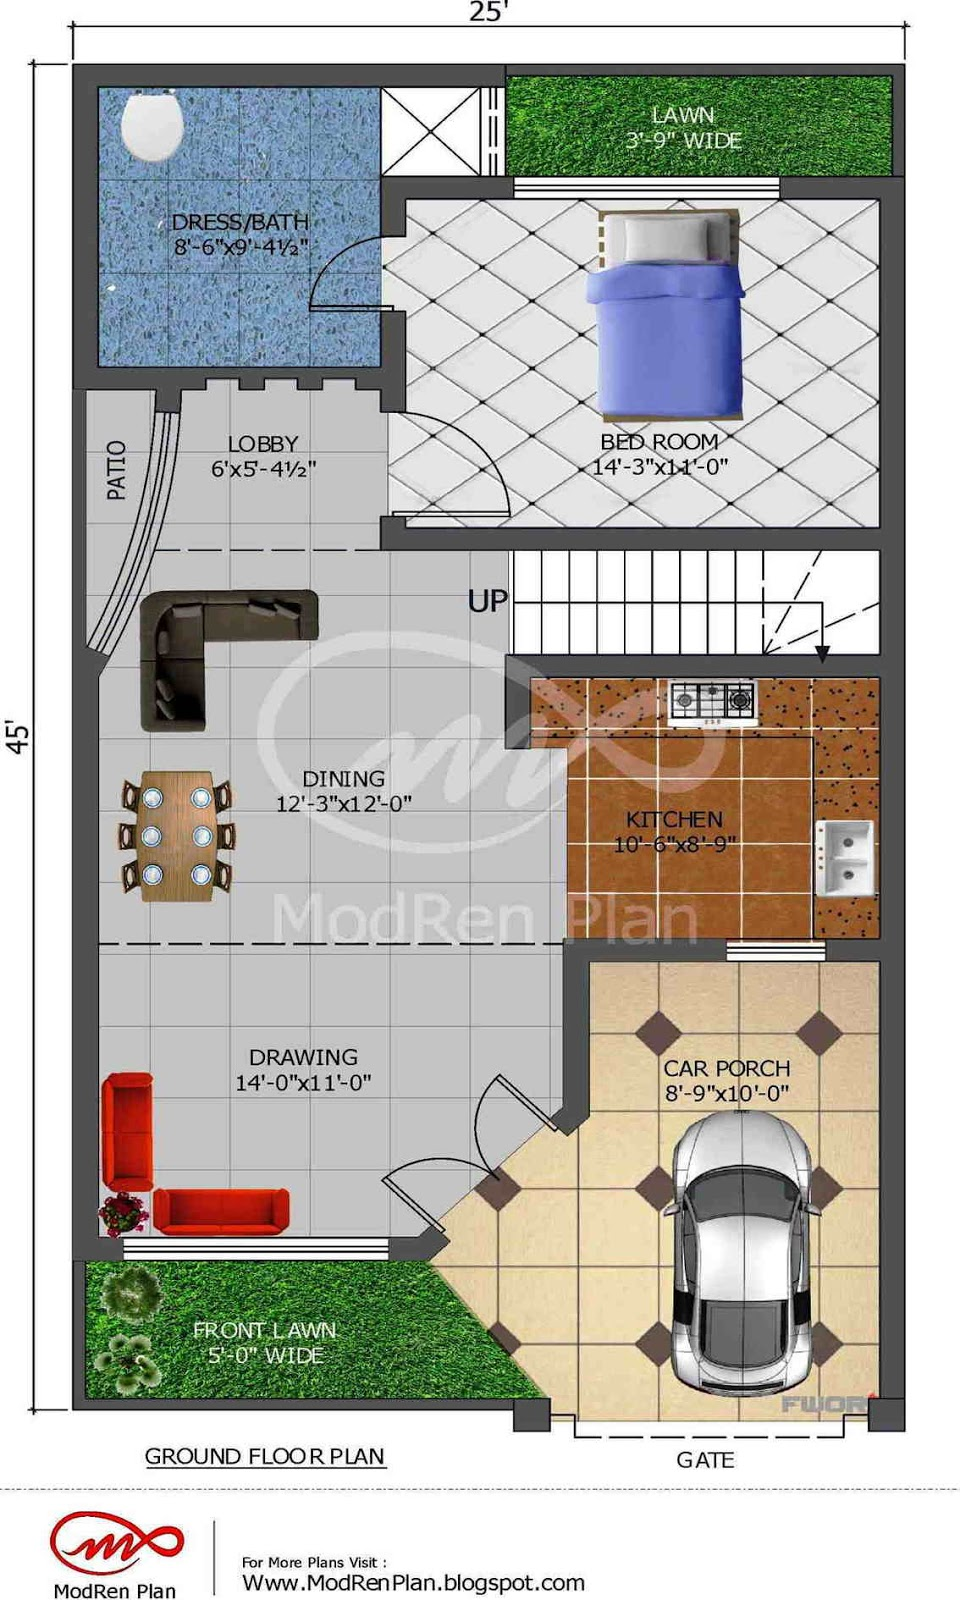 5 marla house plan 1200 sq ft 25x45 feet for 5 marla house modern design